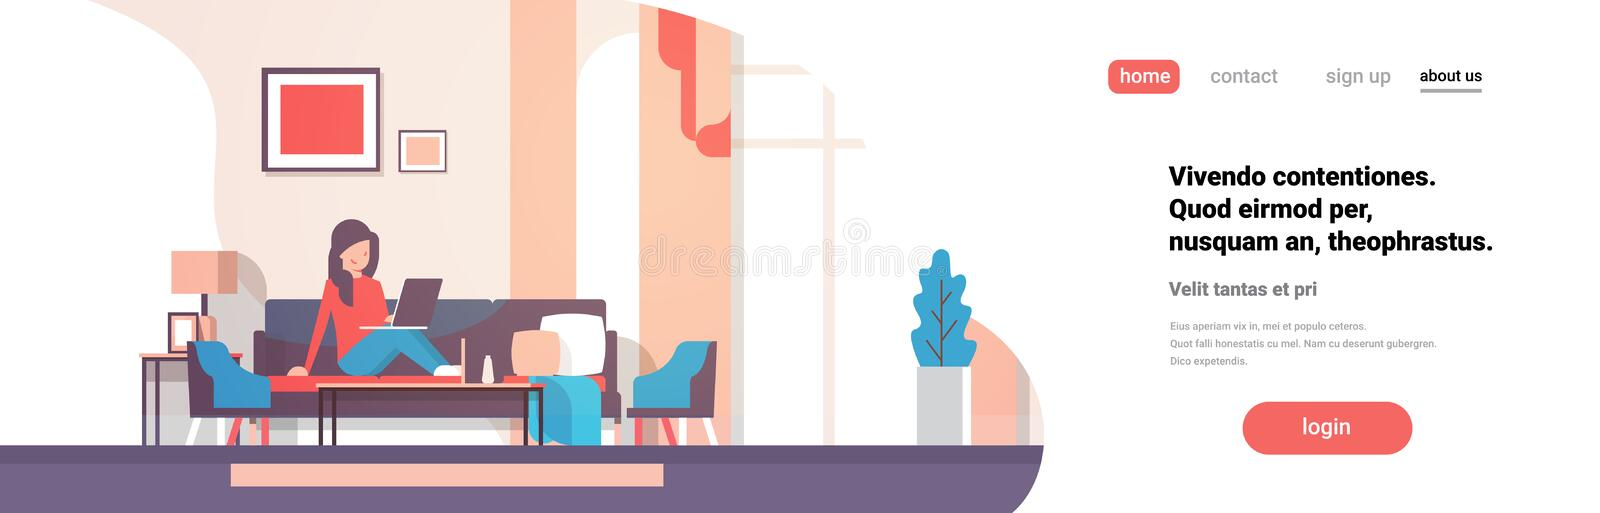 Woman using laptop living room interior home modern apartment female relax concept flat horizontal banner copy space. Vector illustration royalty free illustration